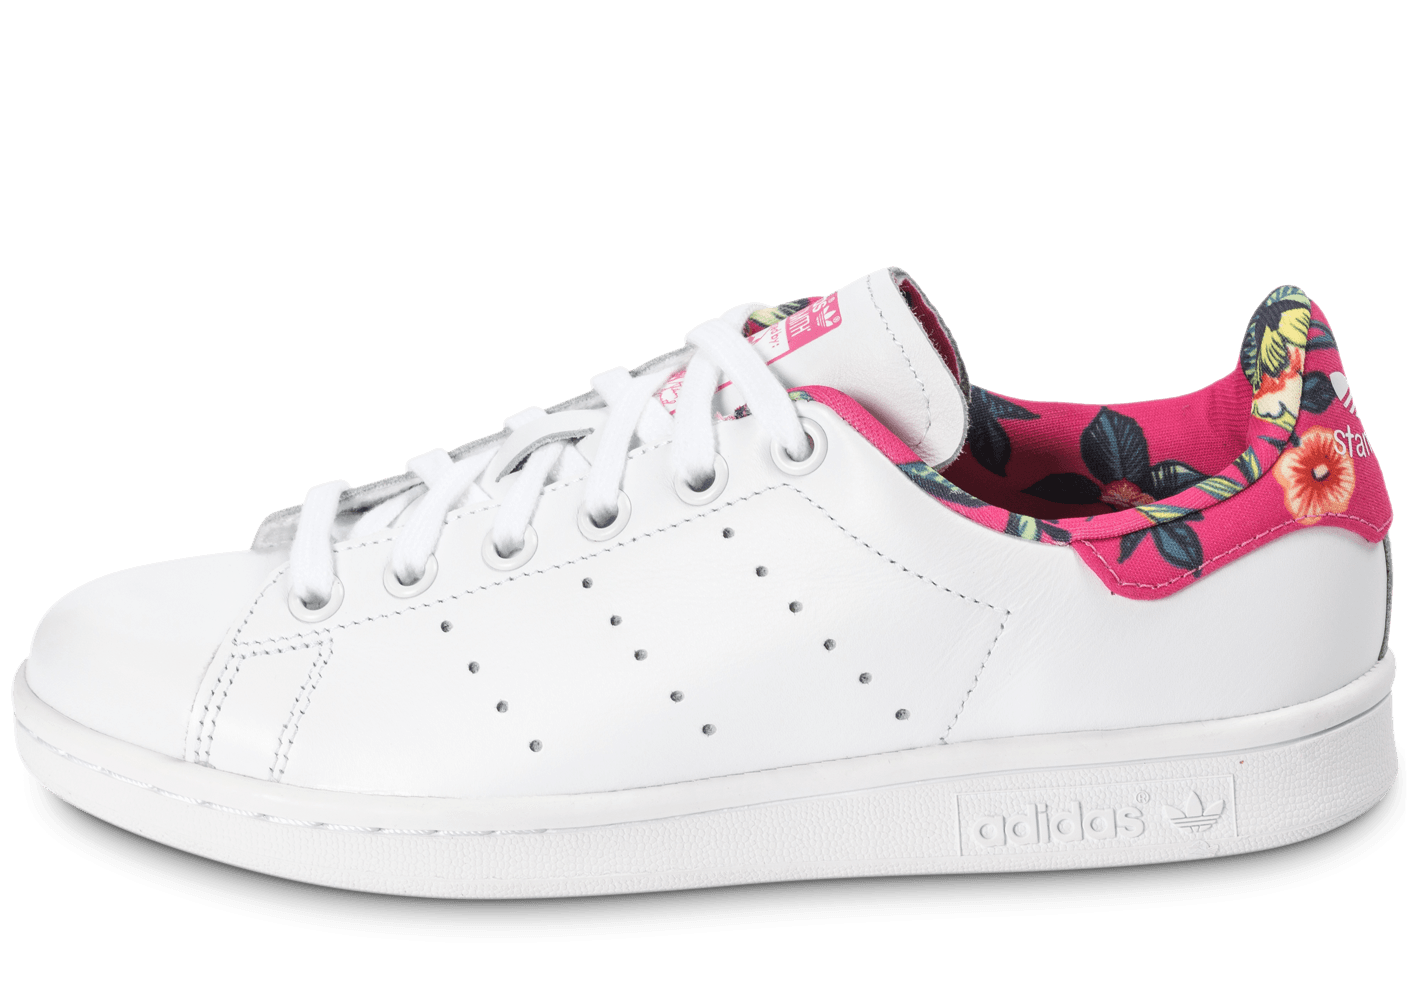 Stan smith femme floral